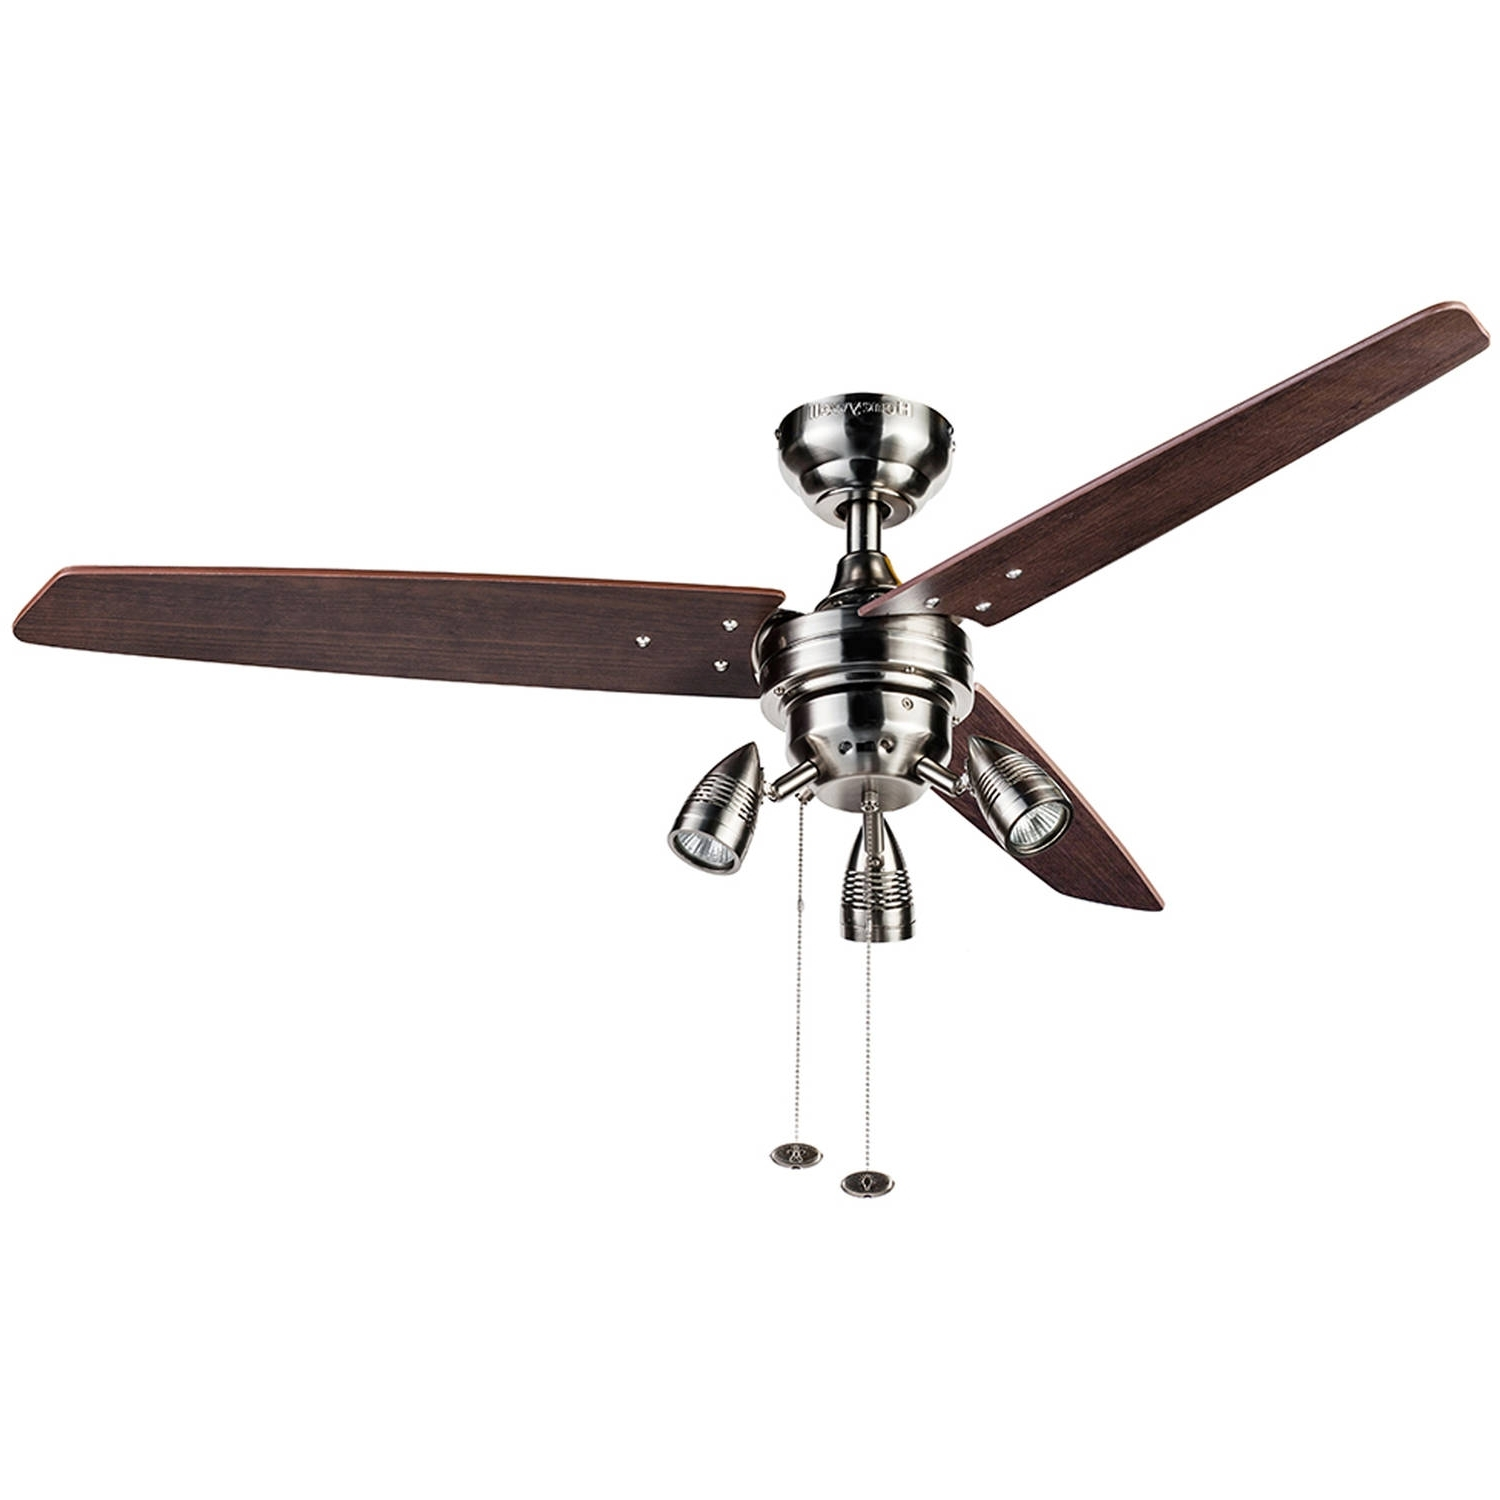 "48 Inch Outdoor Ceiling Fans Throughout Preferred 42"" Mainstays Hugger Indoor Ceiling Fan With Light, White – Walmart (View 5 of 20)"